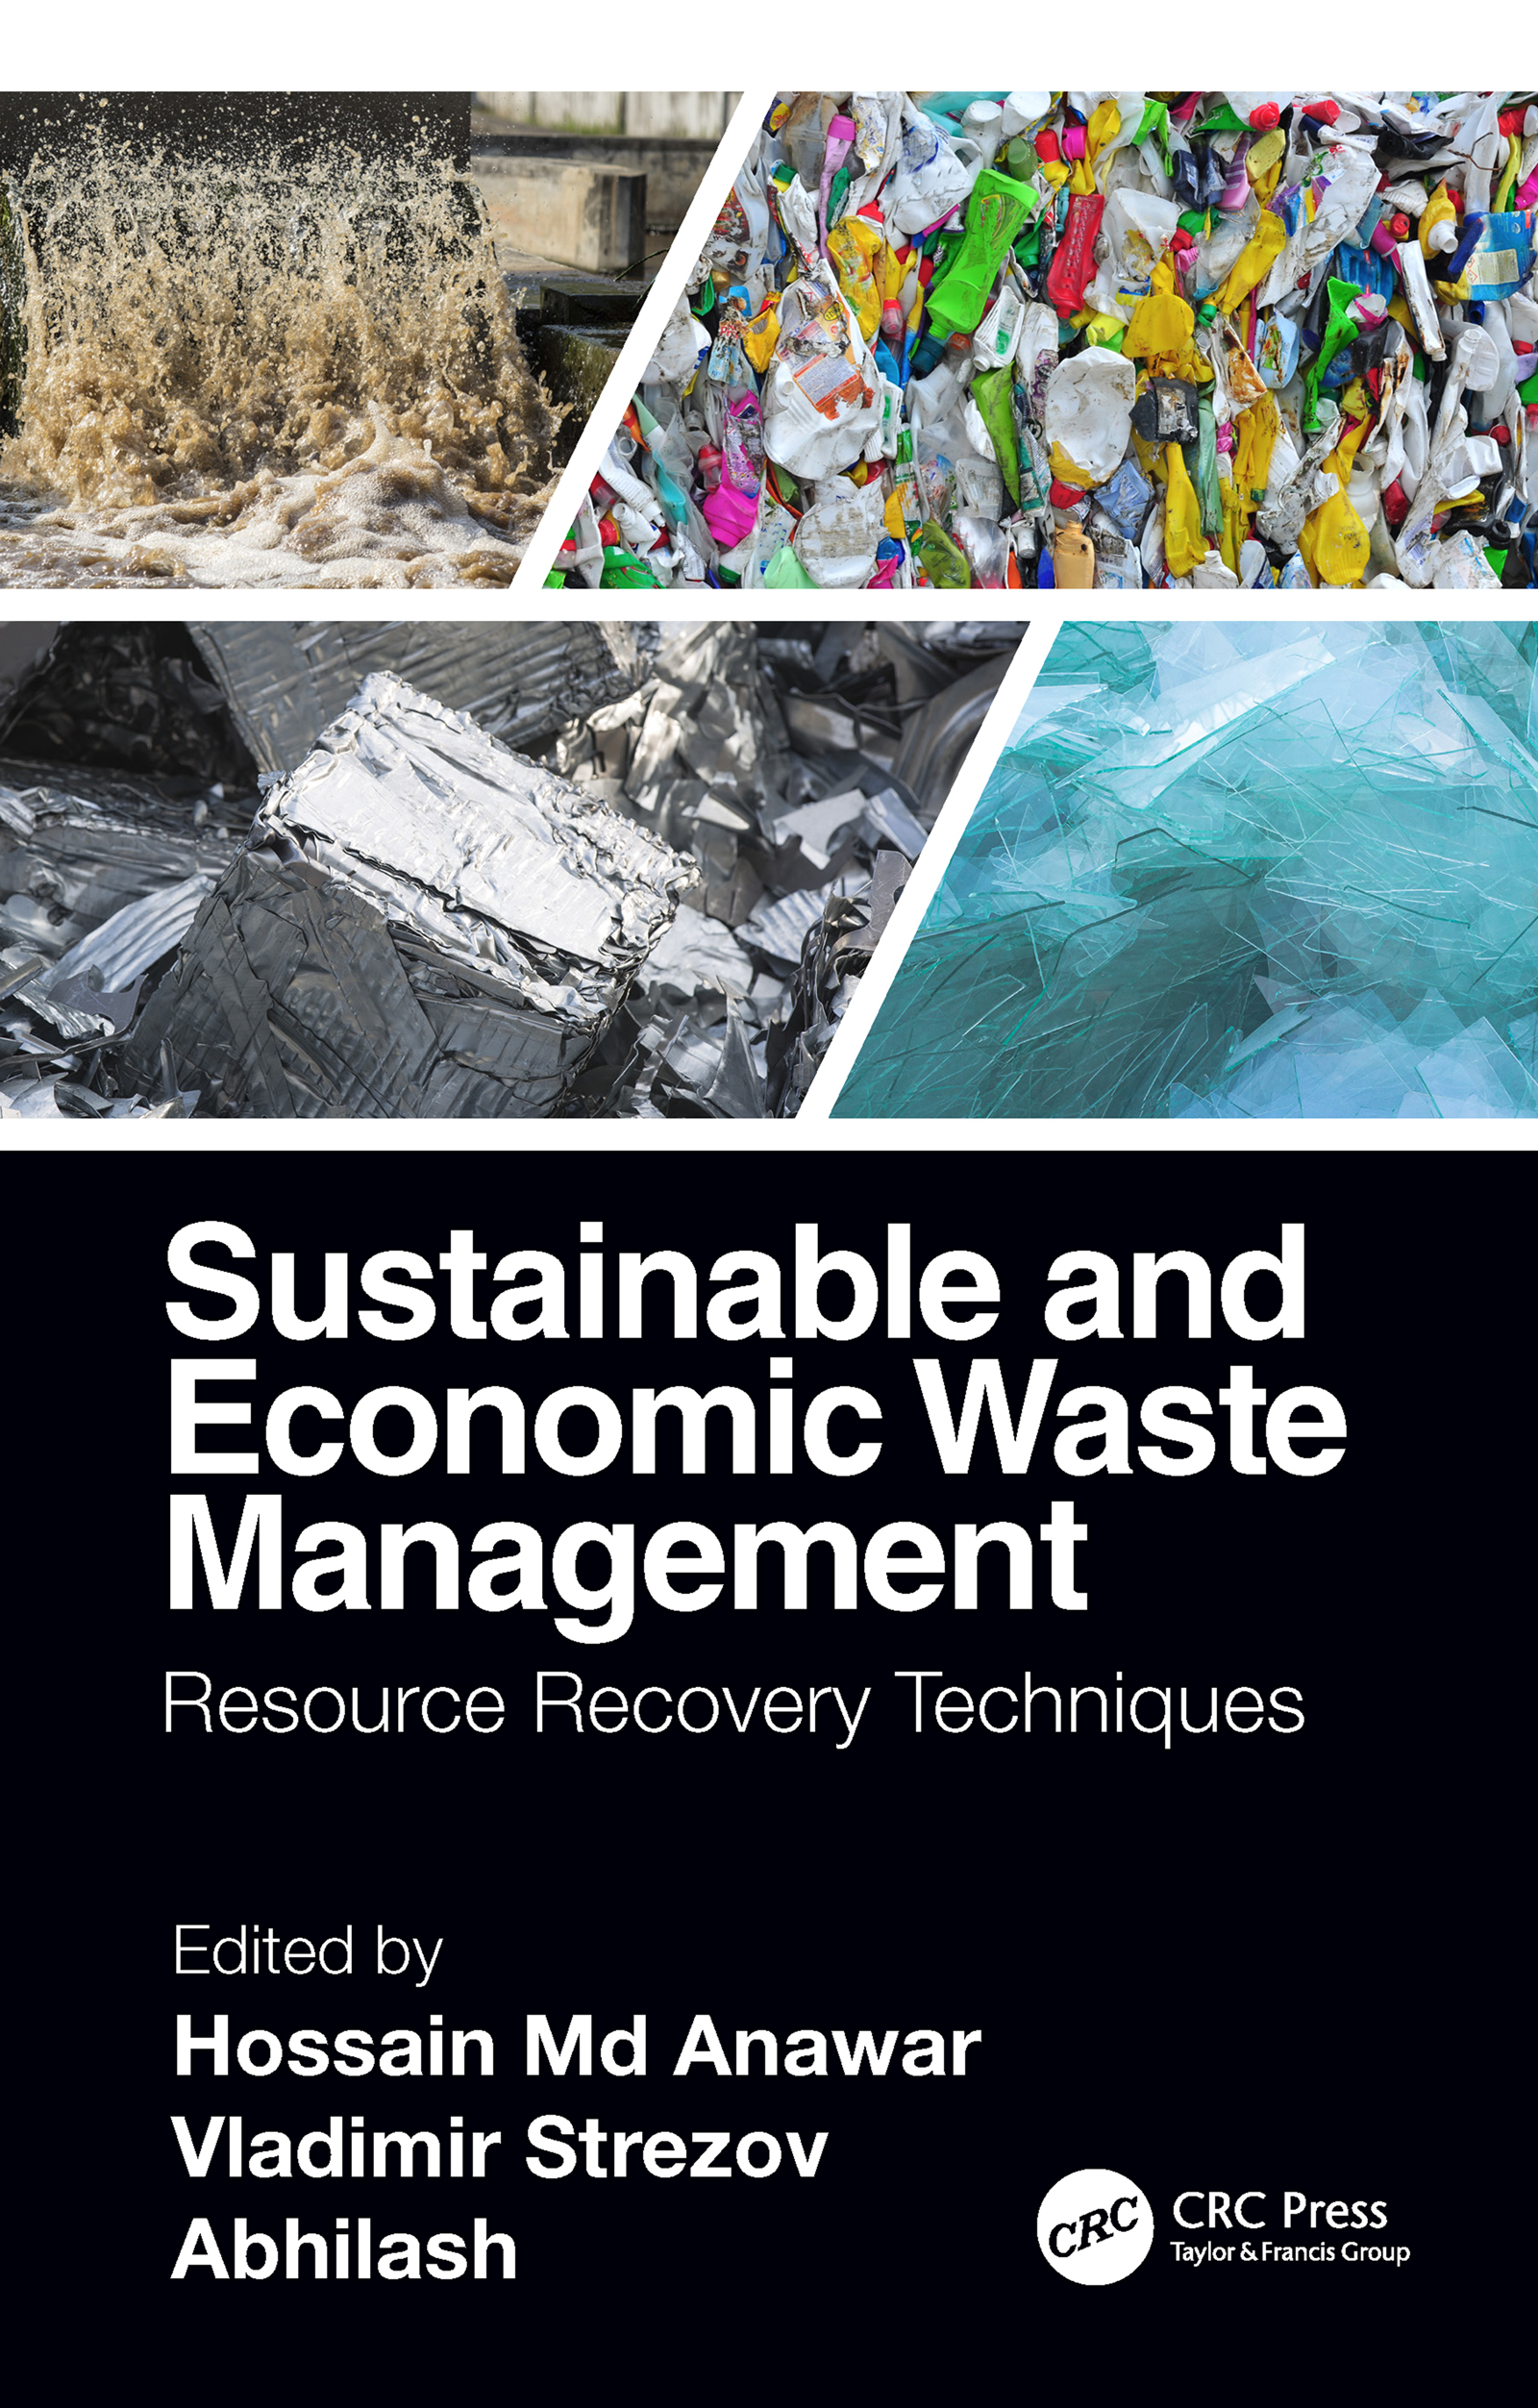 Sustainable and Economic Waste Management: Resource Recovery Techniques book cover